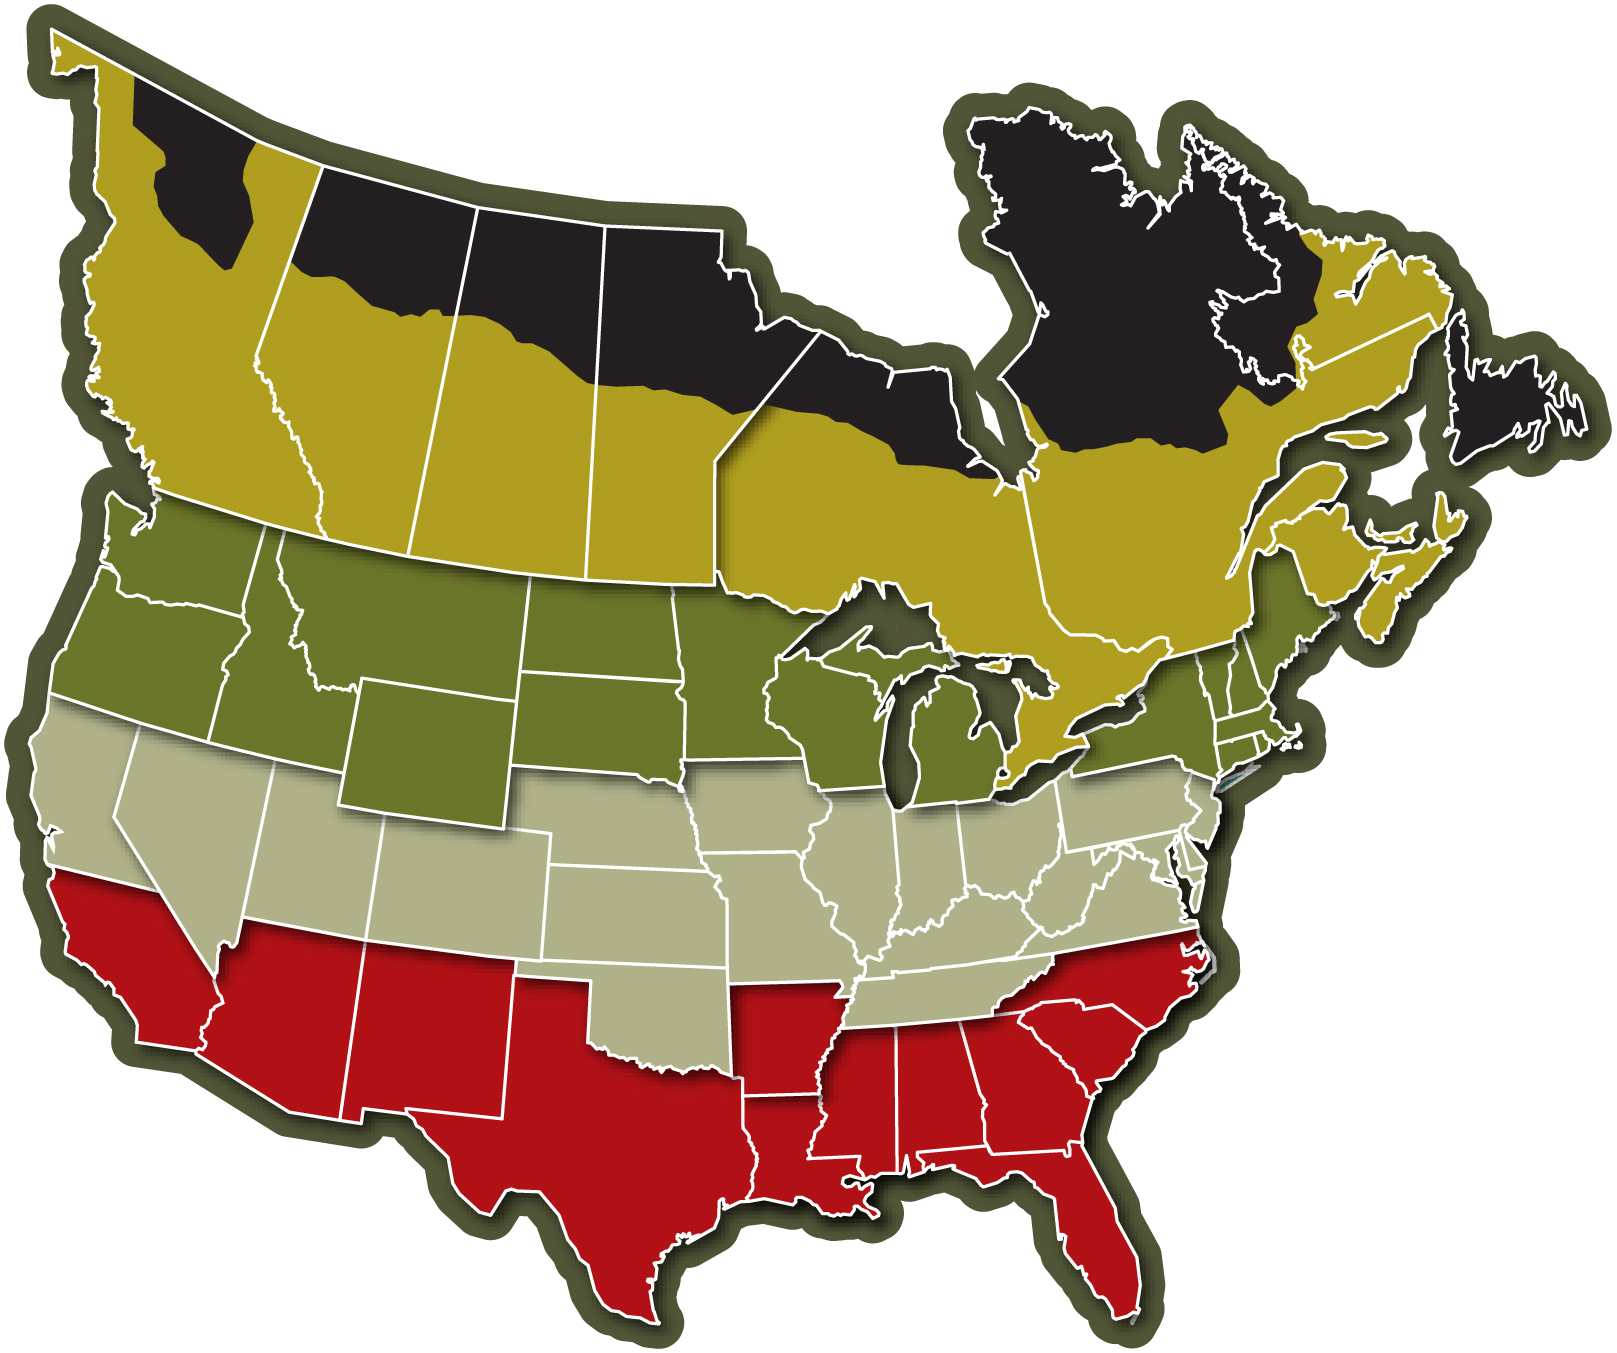 powerplant-planting-map-usa-can.jpg